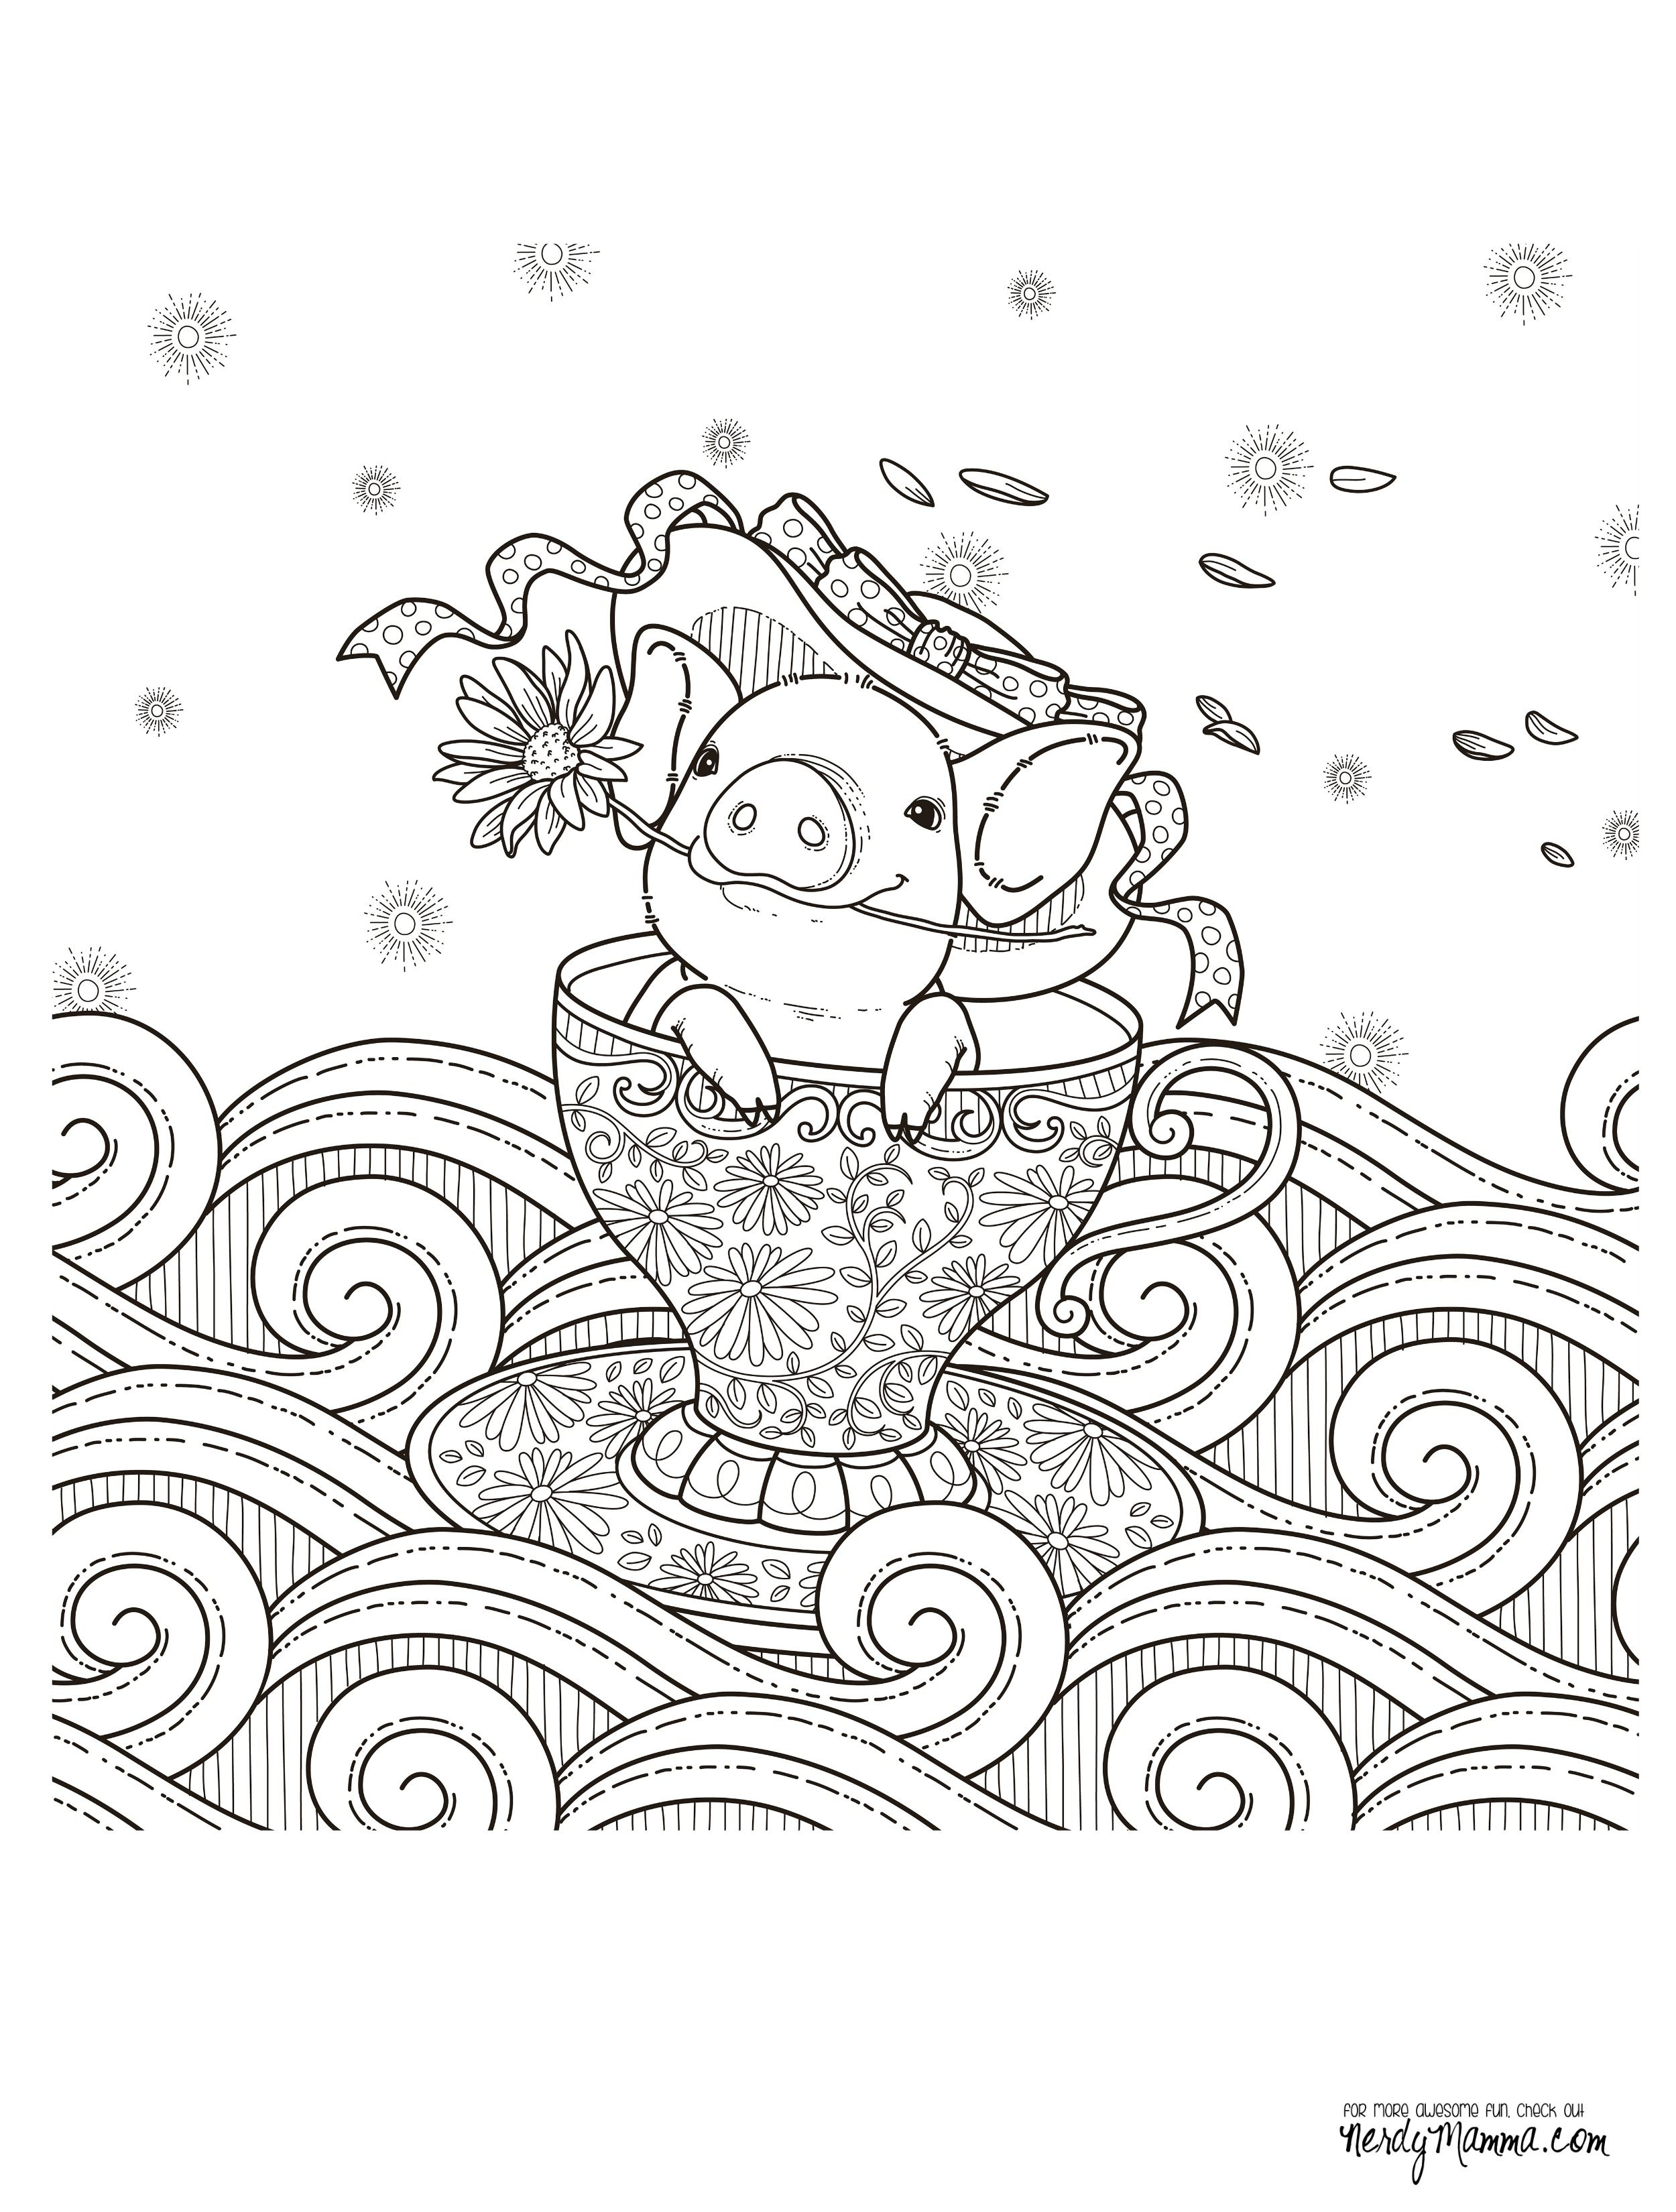 11 Free Printable Adult Coloring Pages | Tea Please | Pinterest ...